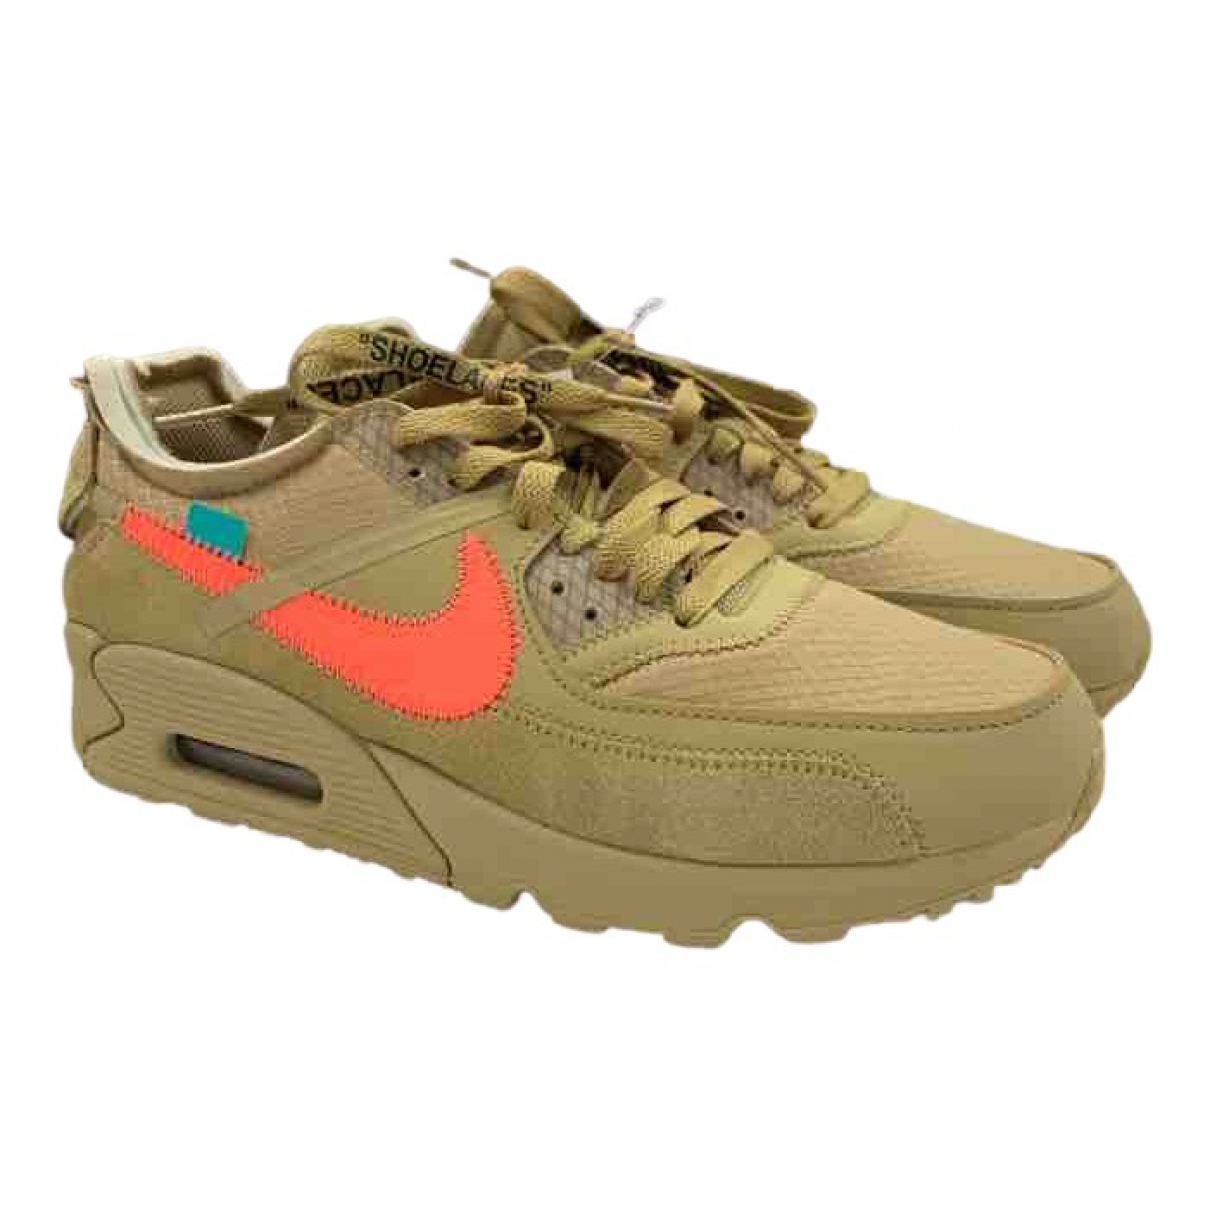 Nike X Off-white Air Max 90 Sneakers in  Braun Leinen